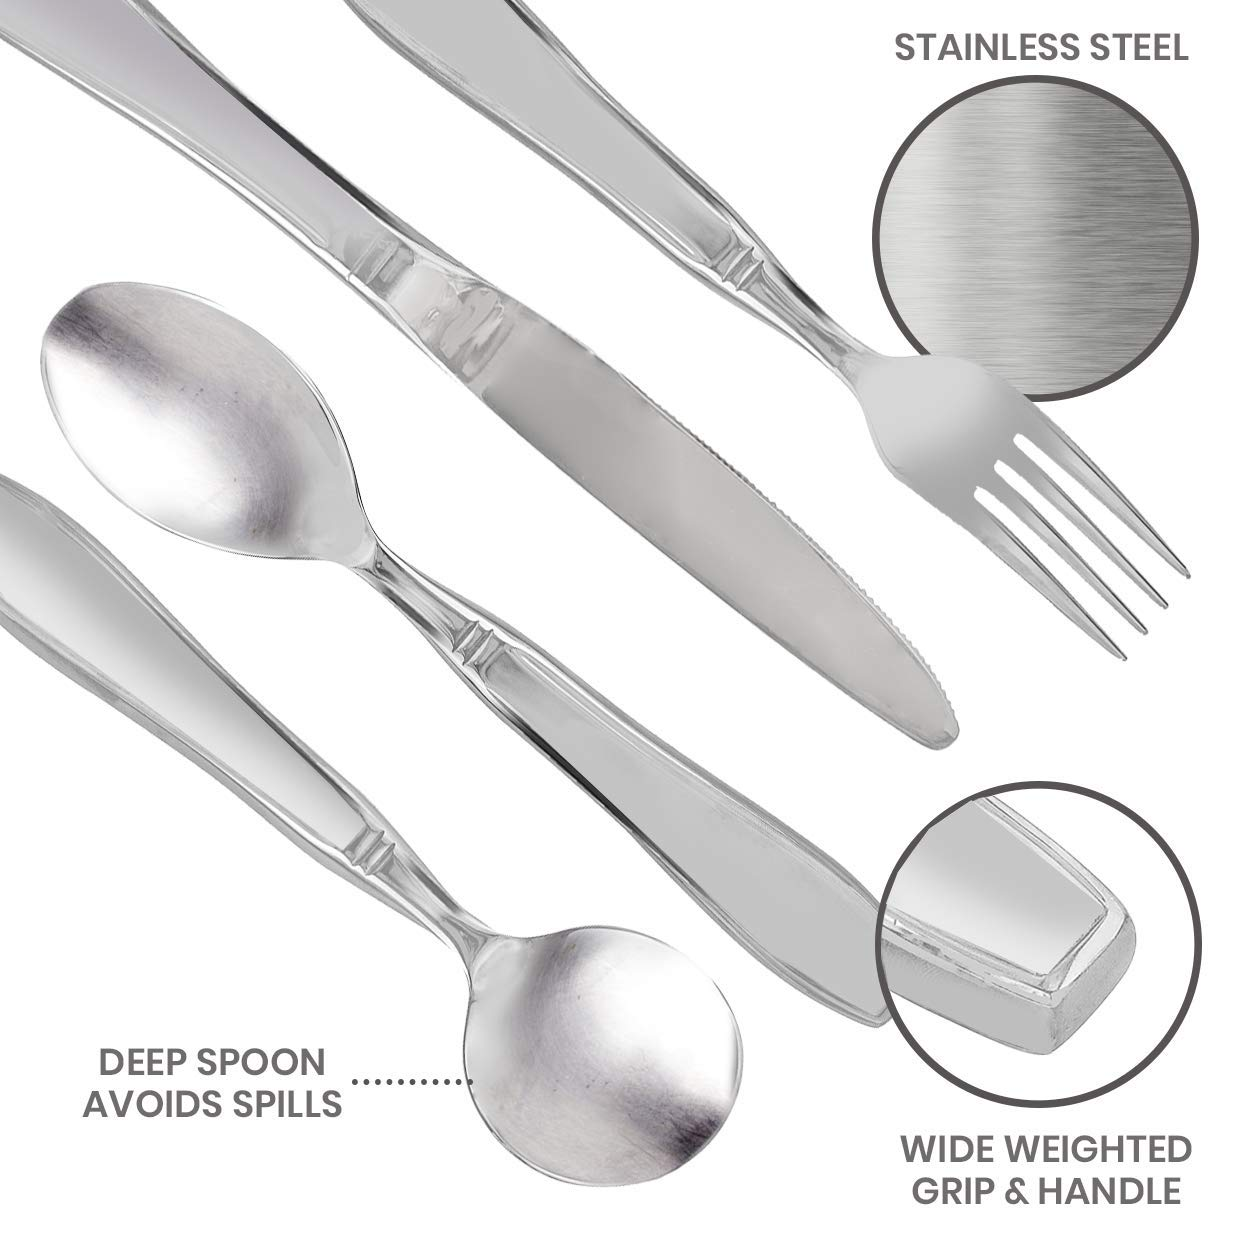 Linelax Weighted Utensils for Tremors and Parkinsons Patients - Heavy Weight Steel Silverware Set of Knife, Fork, Teaspoon and Soup Spoon - Adaptive Eating Flatware Helps Hand Tremor, Parkinson, Arthr by Linelax (Image #3)